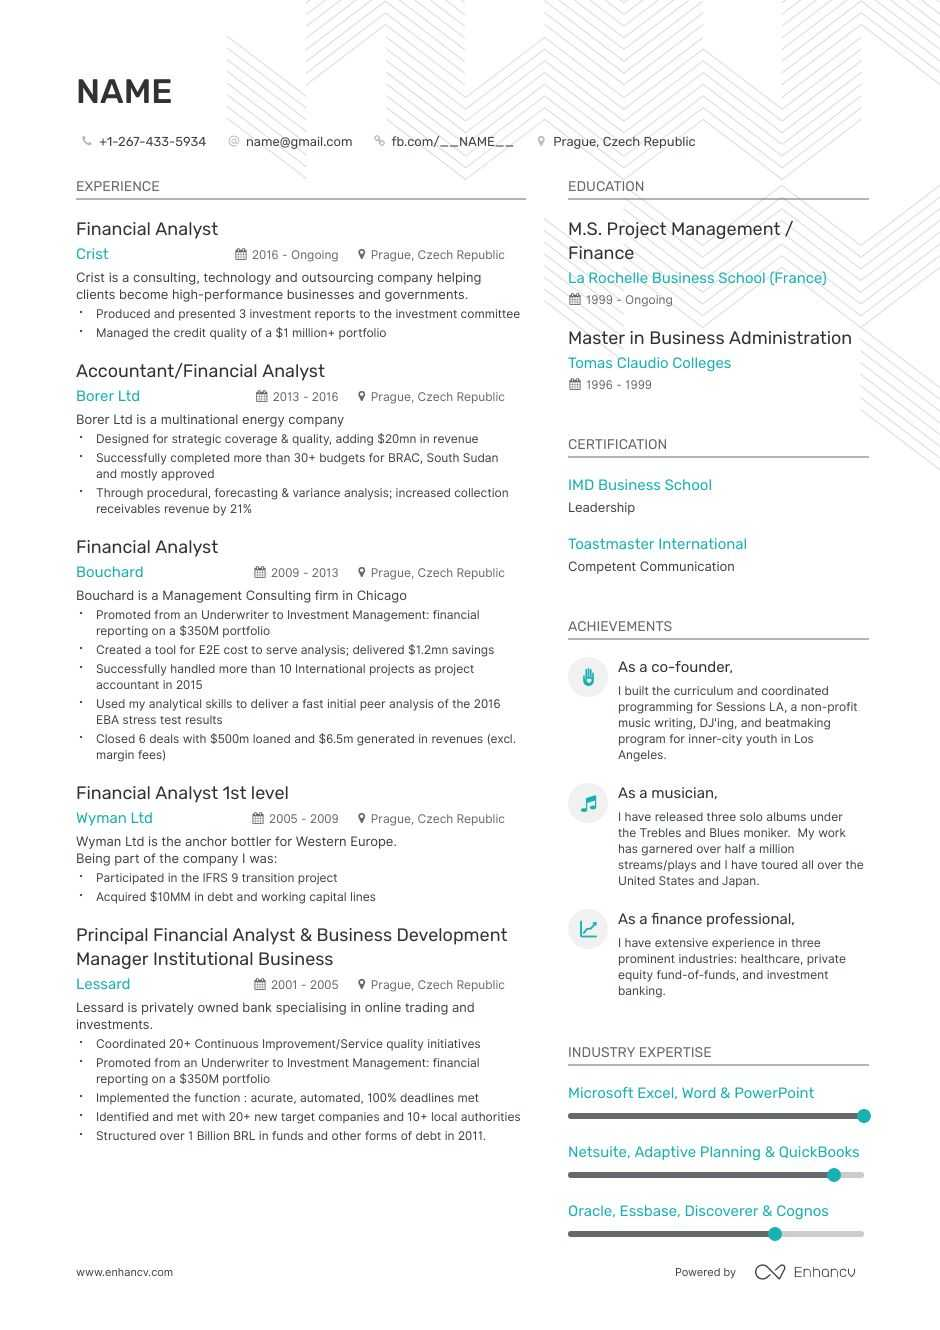 entry level financial analyst resume examples skills templates more for sample fresh Resume Financial Analyst Resume Sample Fresh Graduate